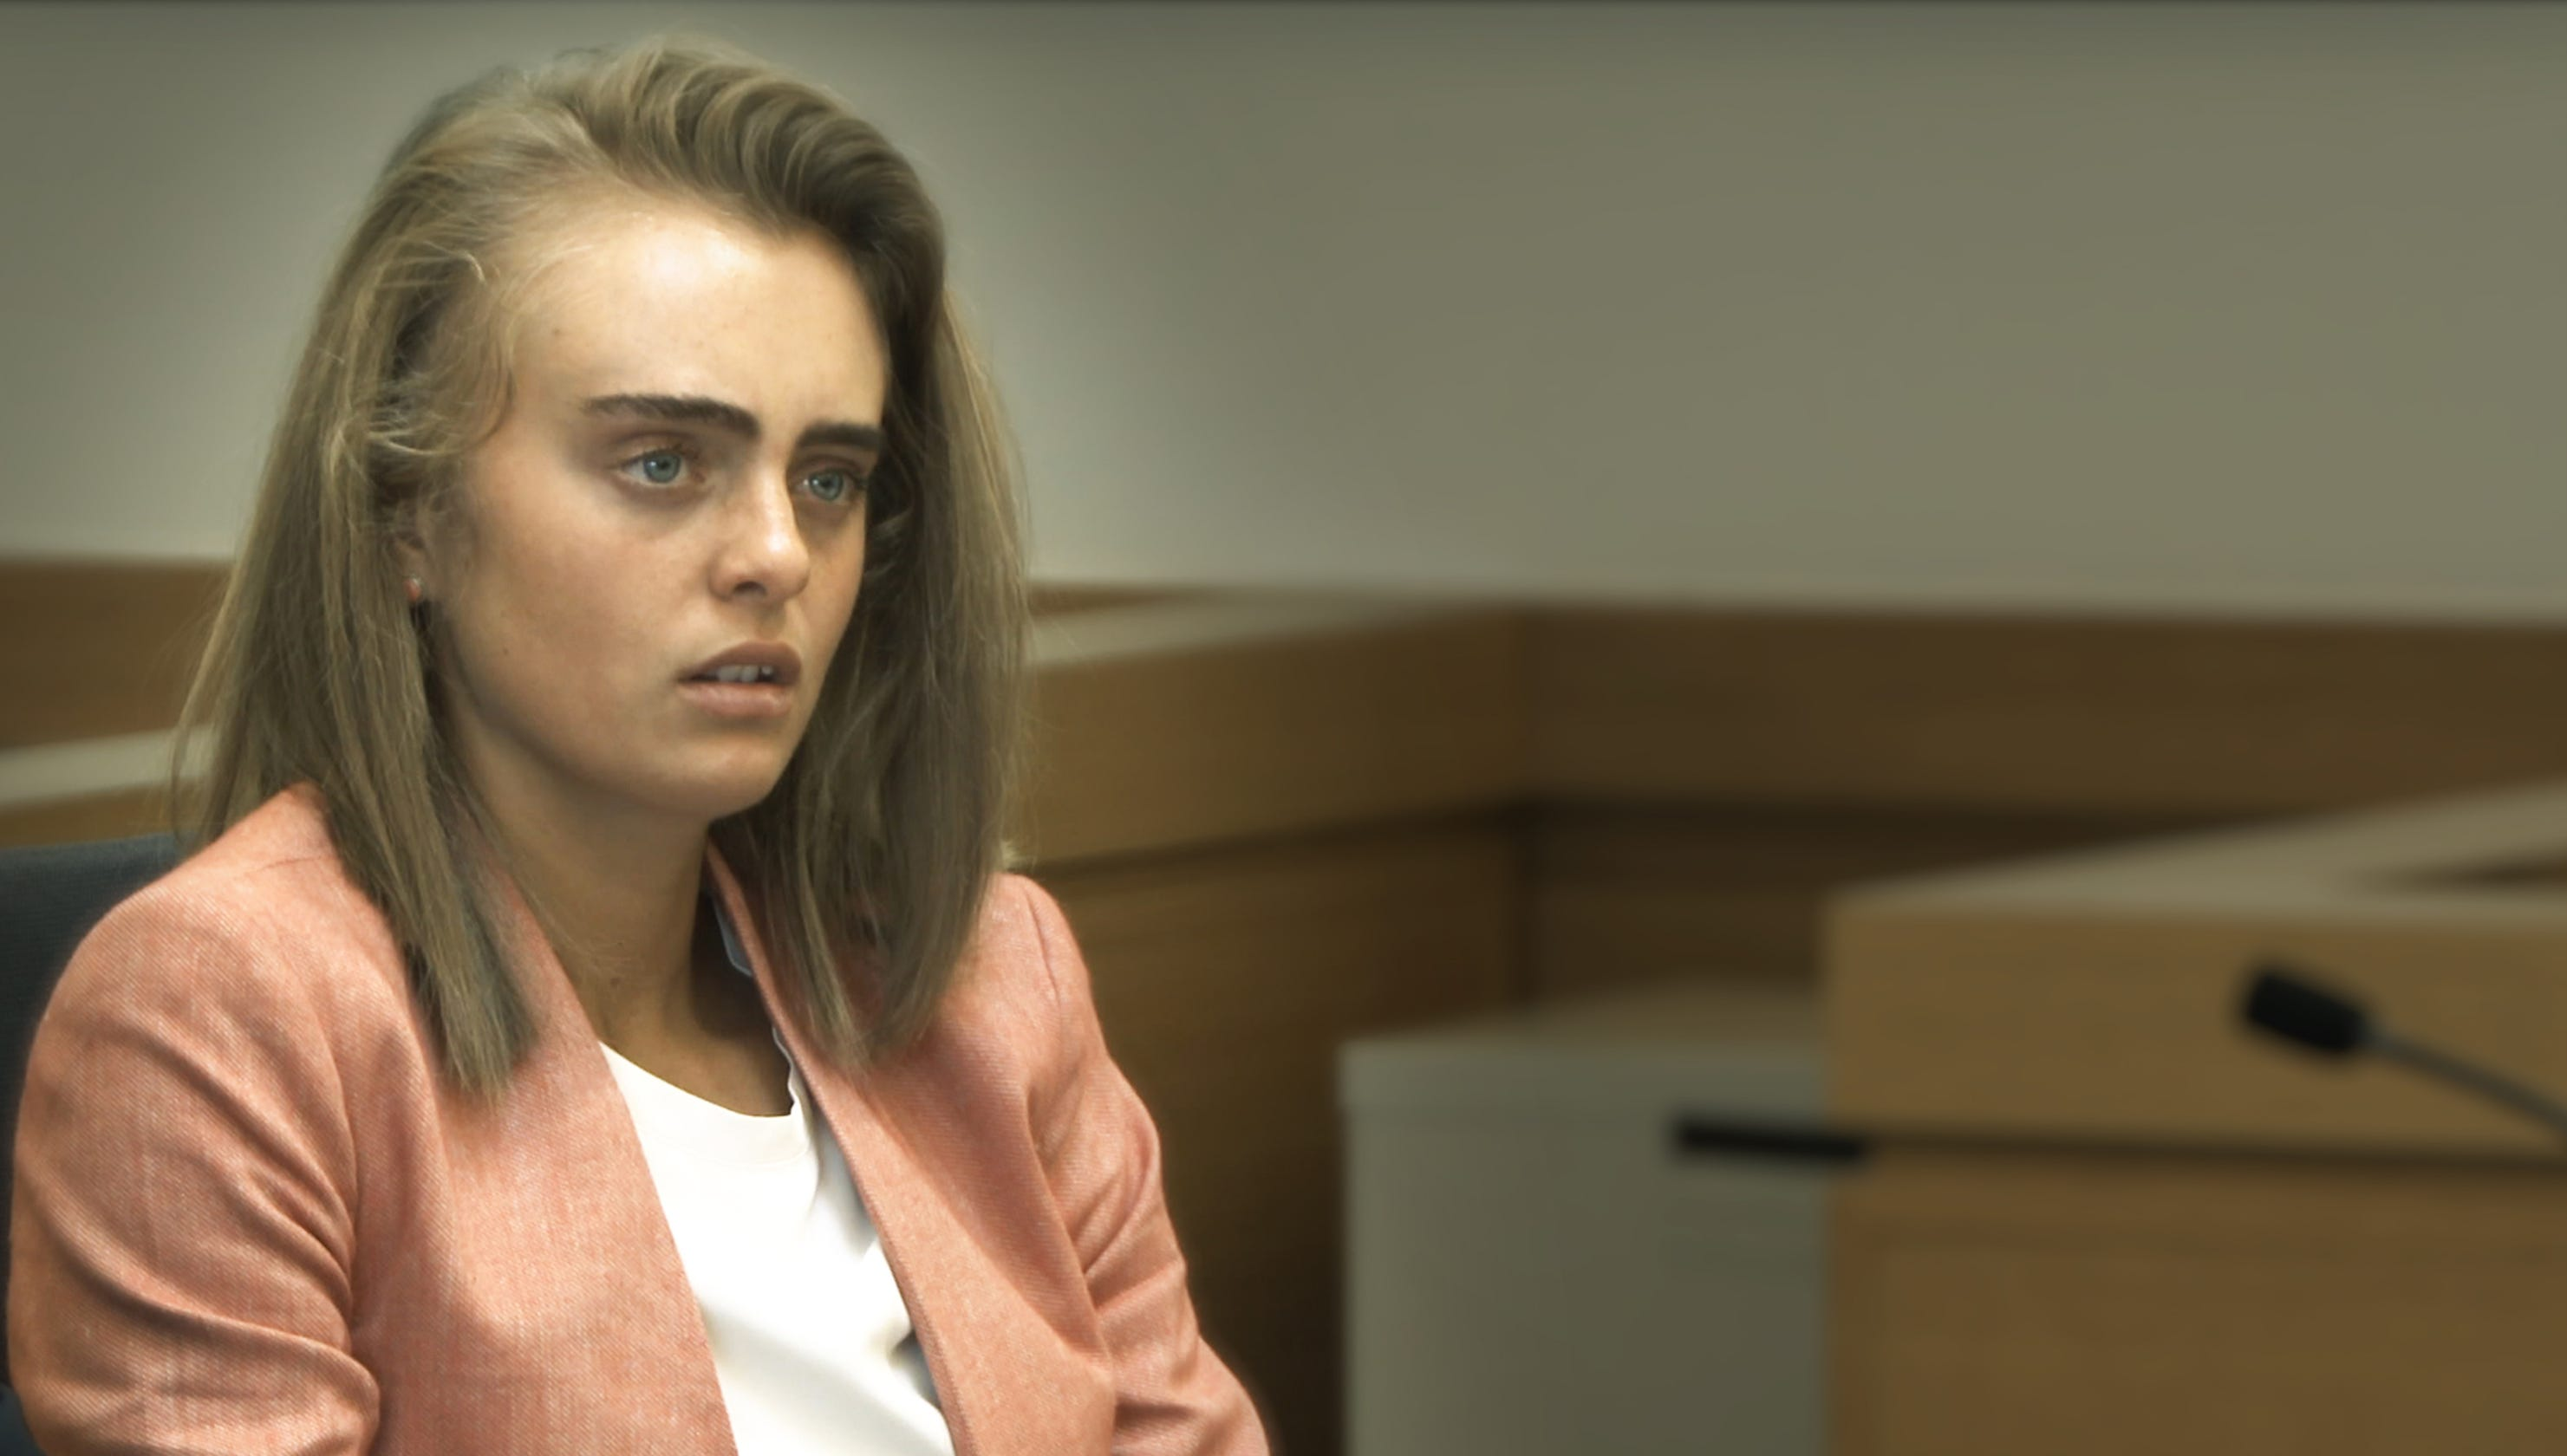 Suicide text case: Was Michelle Carter inspired by Lea Michele?